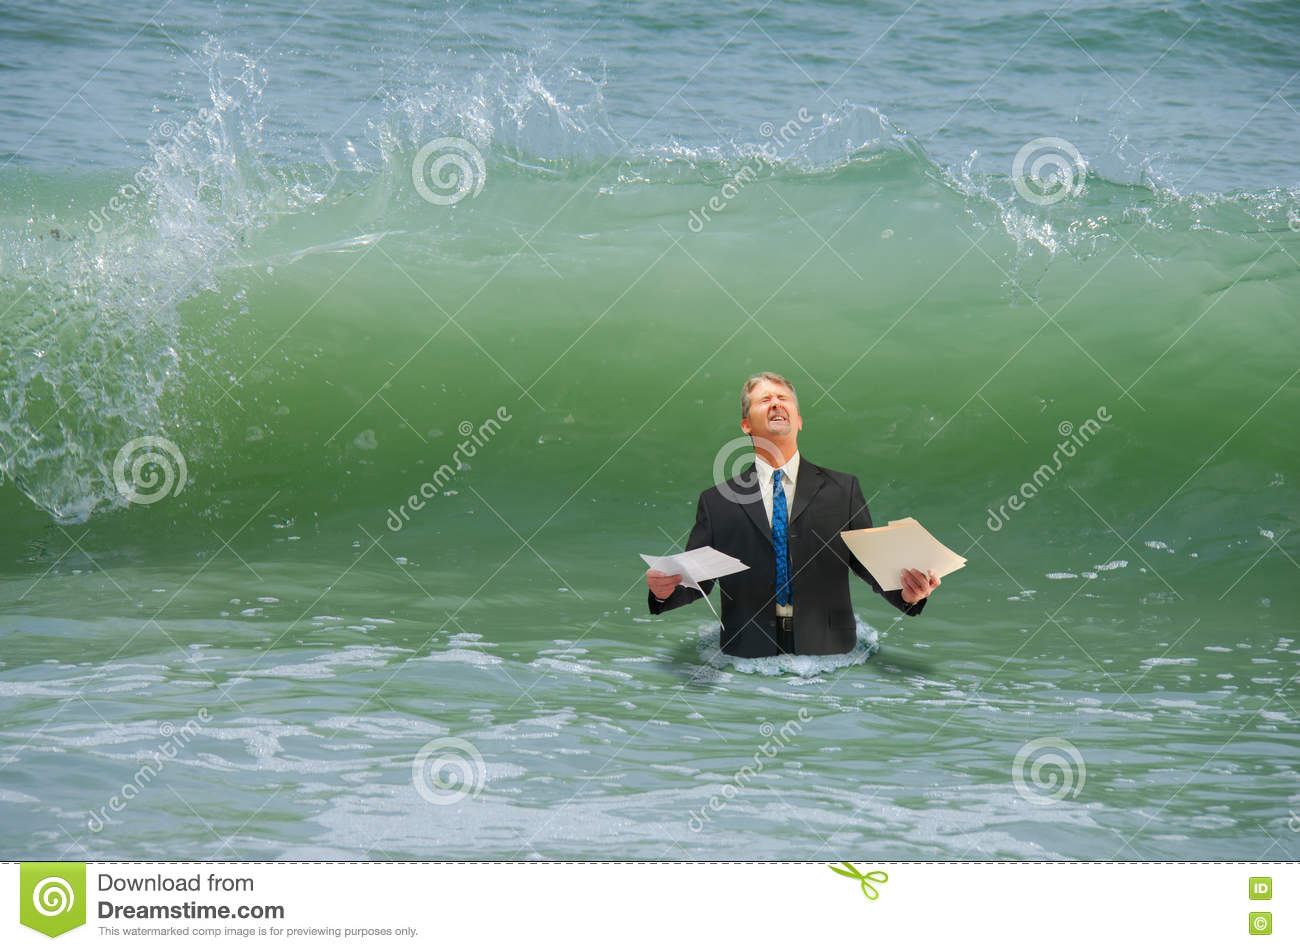 Business pressure man getting hit by wave